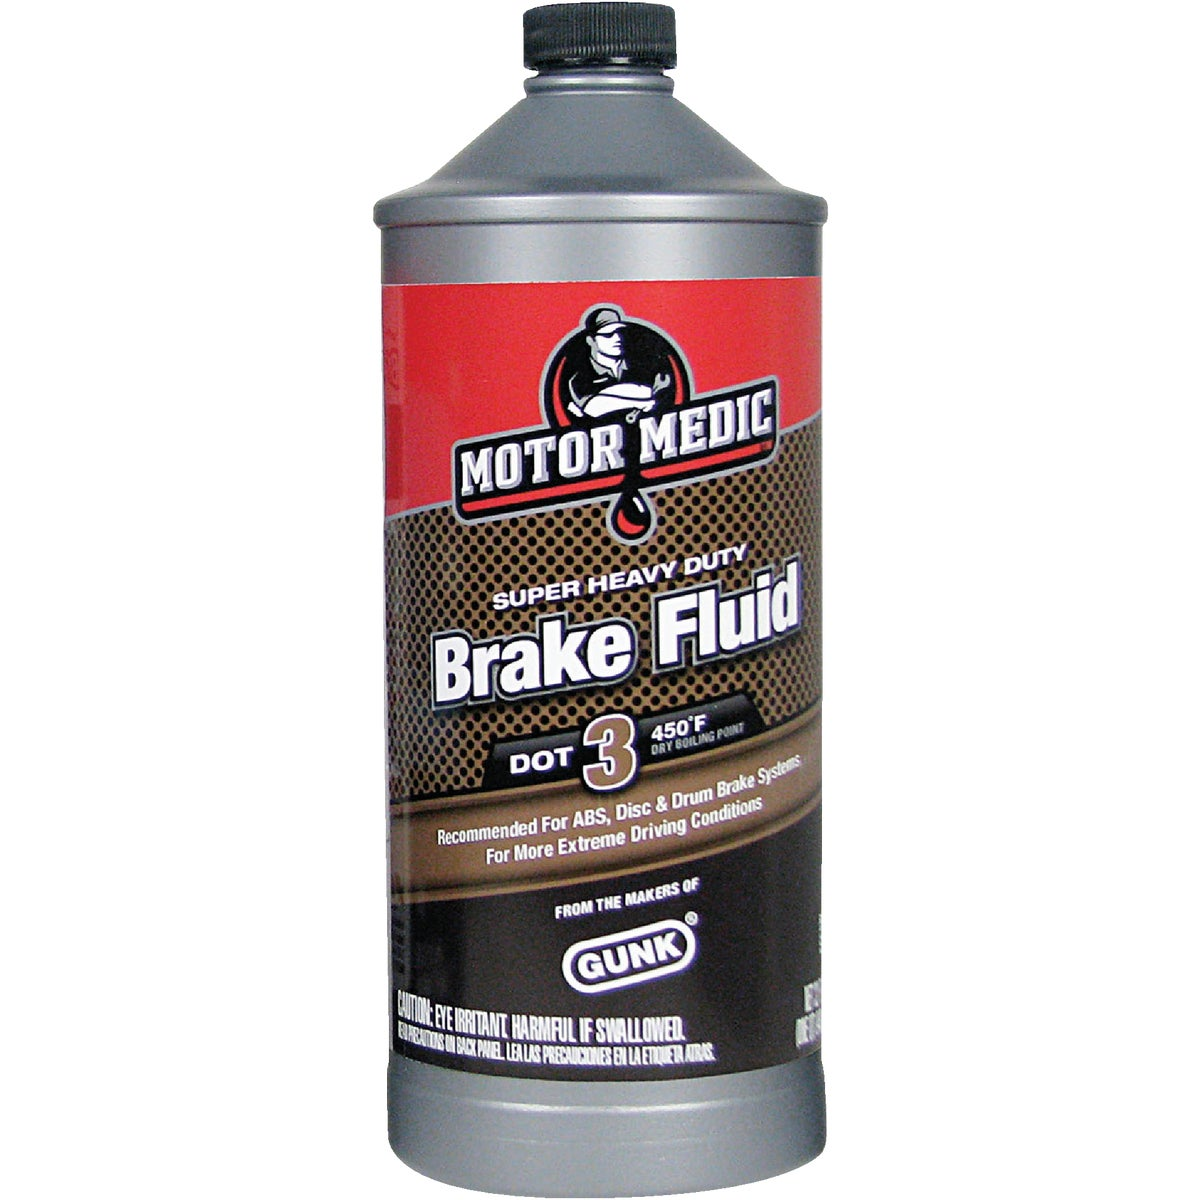 32OZ BRAKE FLUID - M4332 by Radiator Specialty